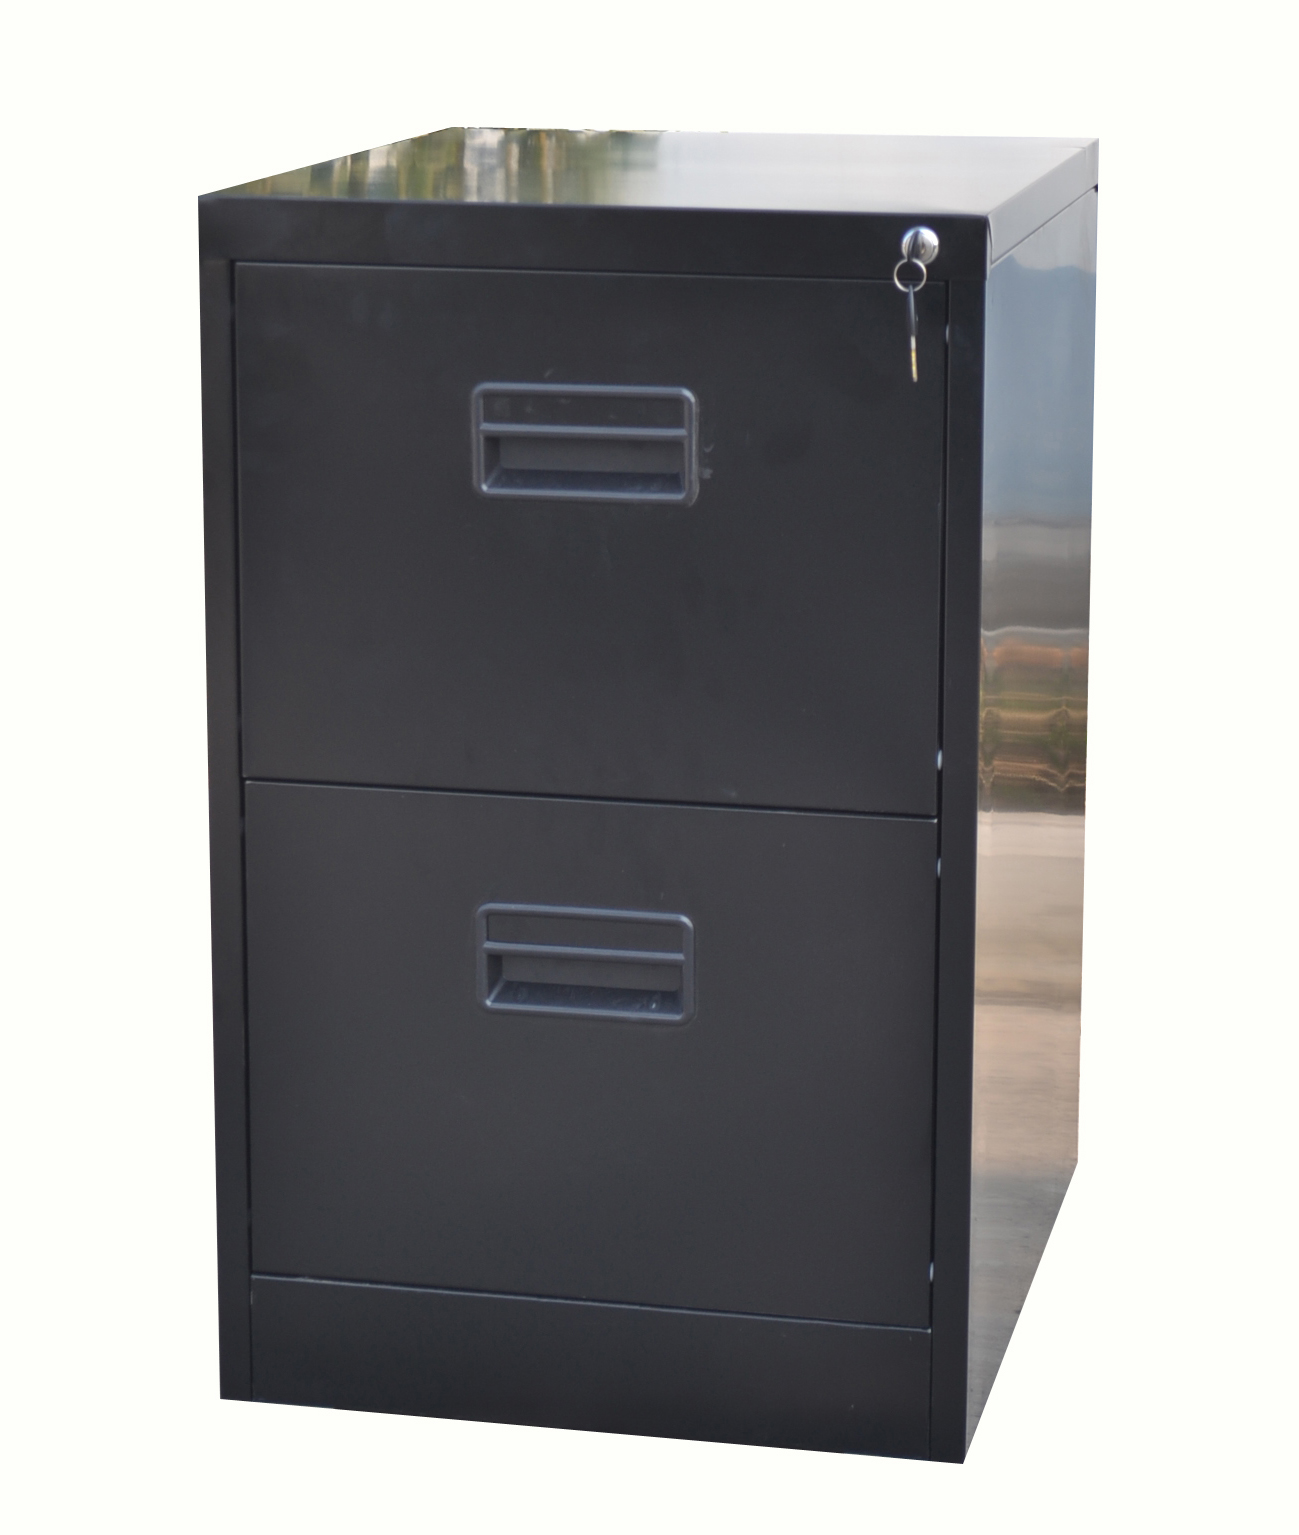 office file storage cabinets style. Black Bedroom Furniture Sets. Home Design Ideas